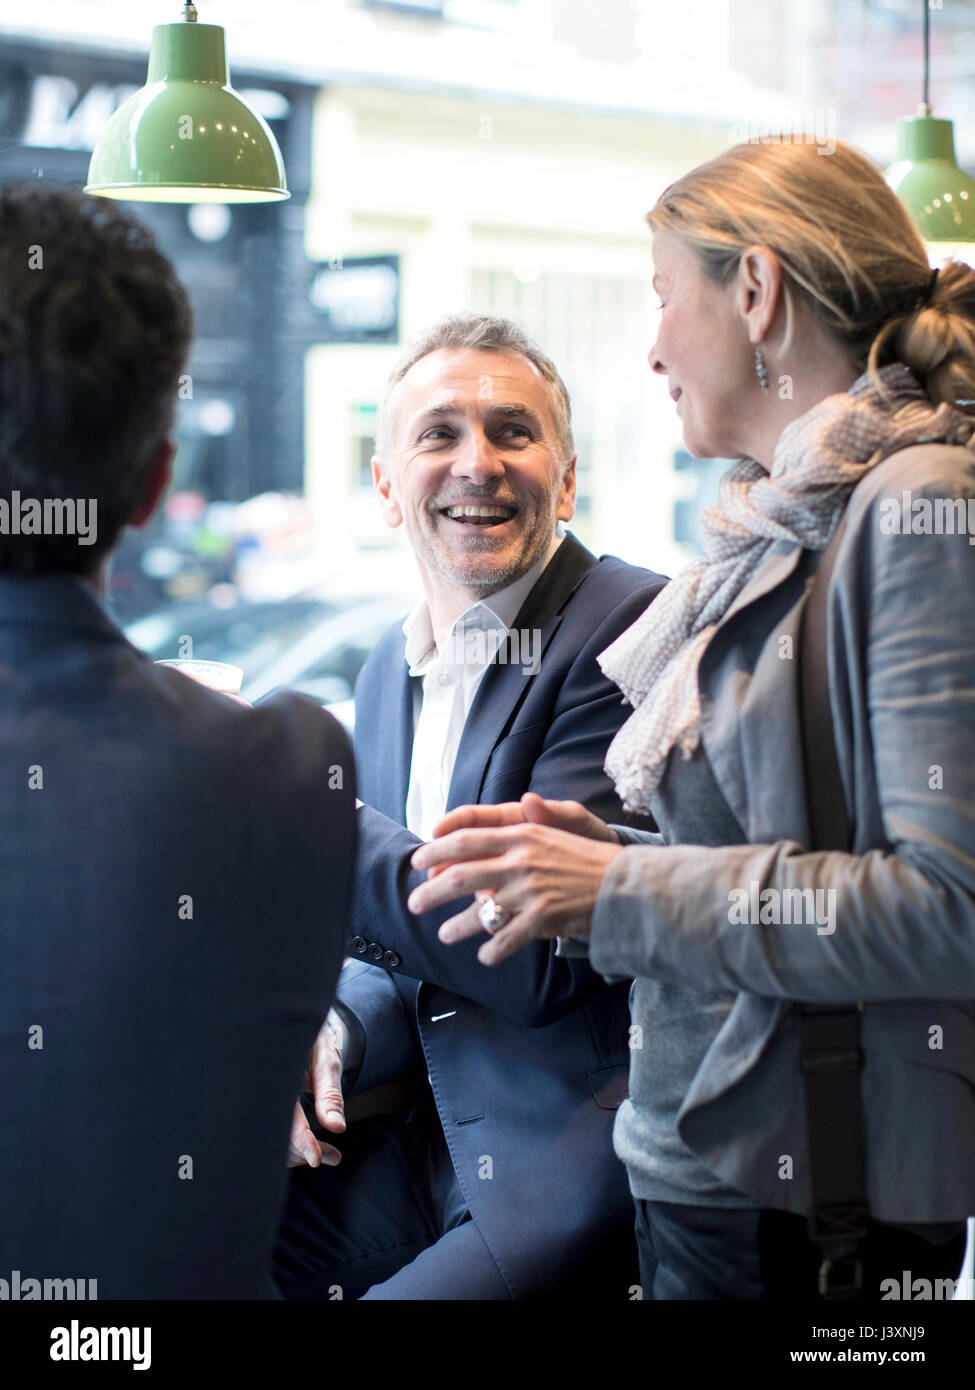 Businessmen and woman having discussion in restaurant - Stock Image